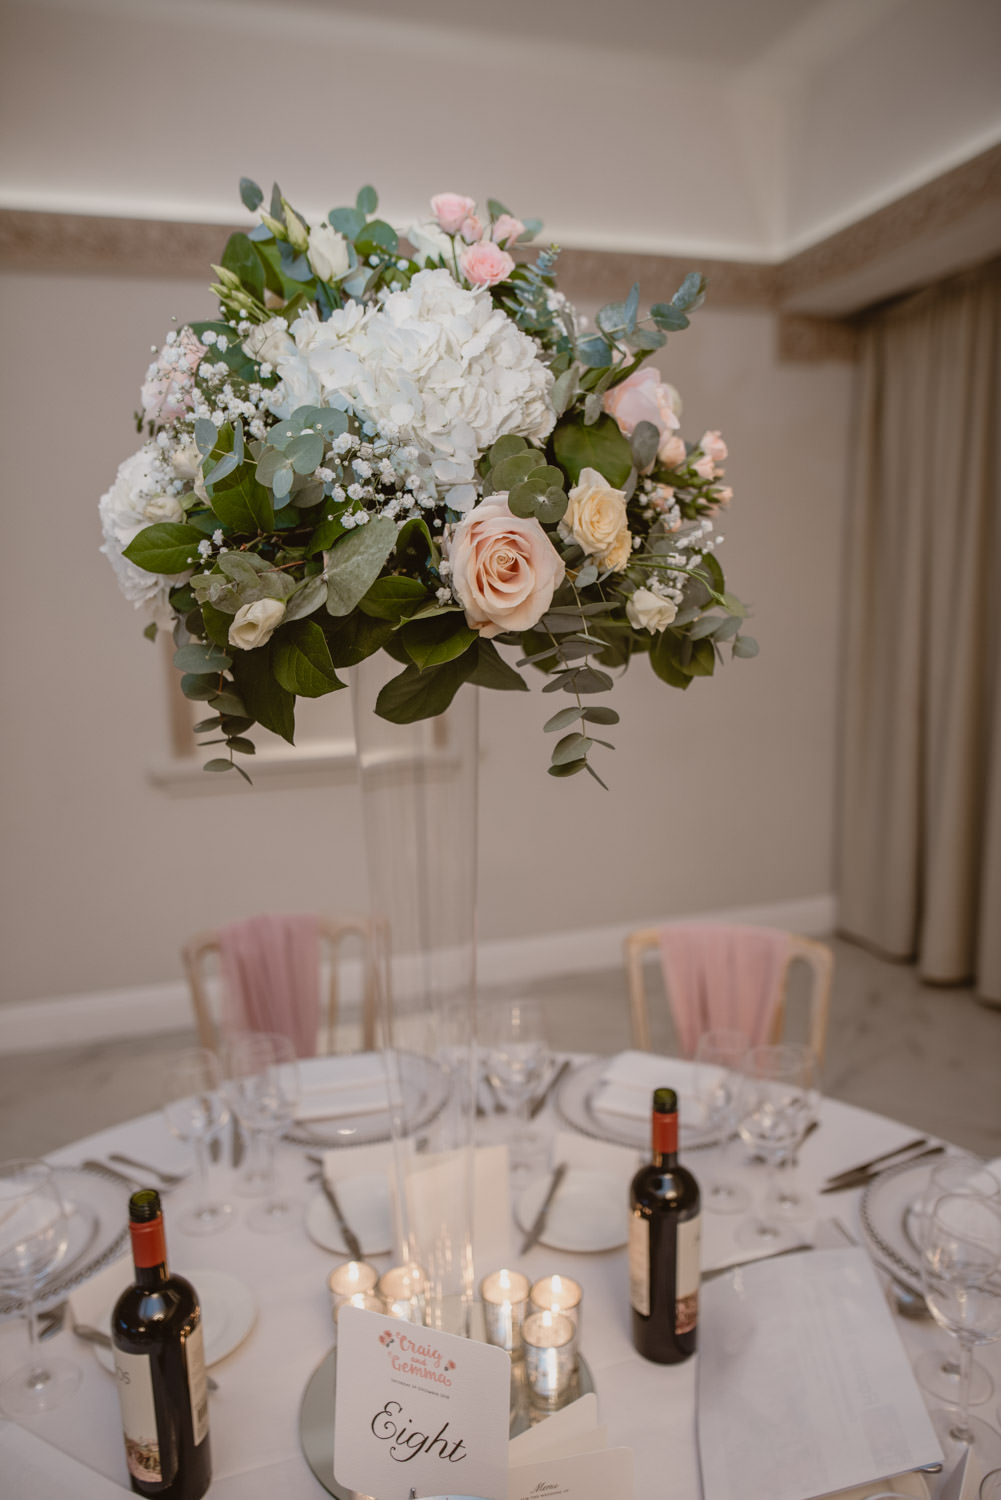 Wedding centrepieces by Paula Rooney Floral Designer